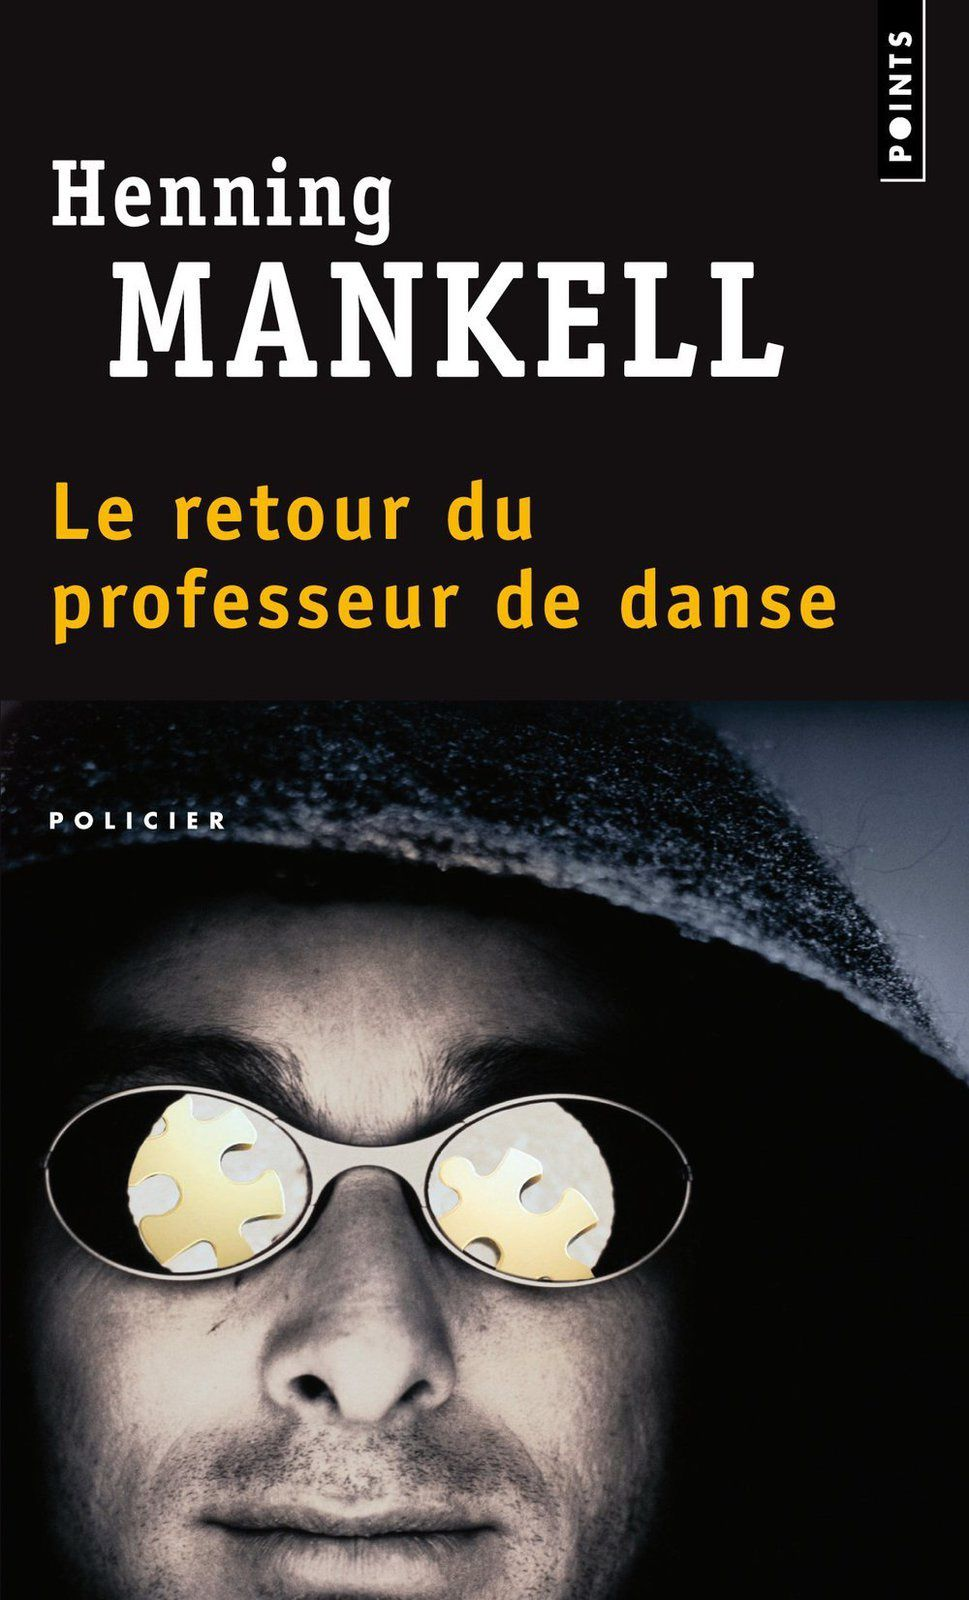 Le retour du professeur de danse - Henning MANKELL (Danslärarens återkommst, 2000), traduction de Anna Gibson, Points collection Policier, 2007, 552 pages